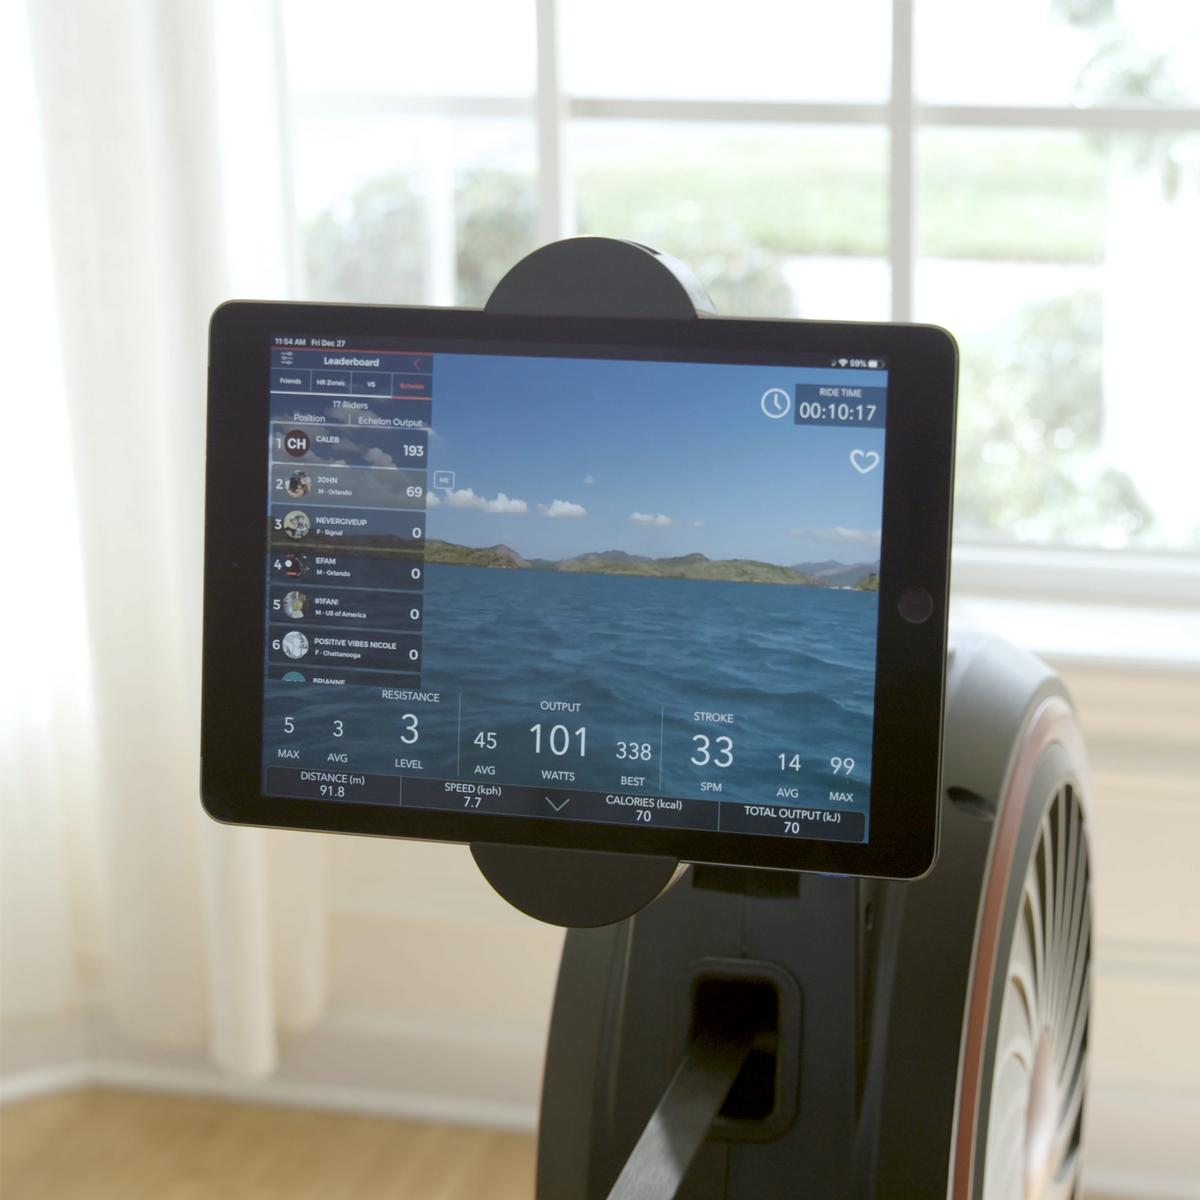 The interactive, fully customisable rower can be connected to the Echelon Fit App via Bluetooth / Echelon Fitness